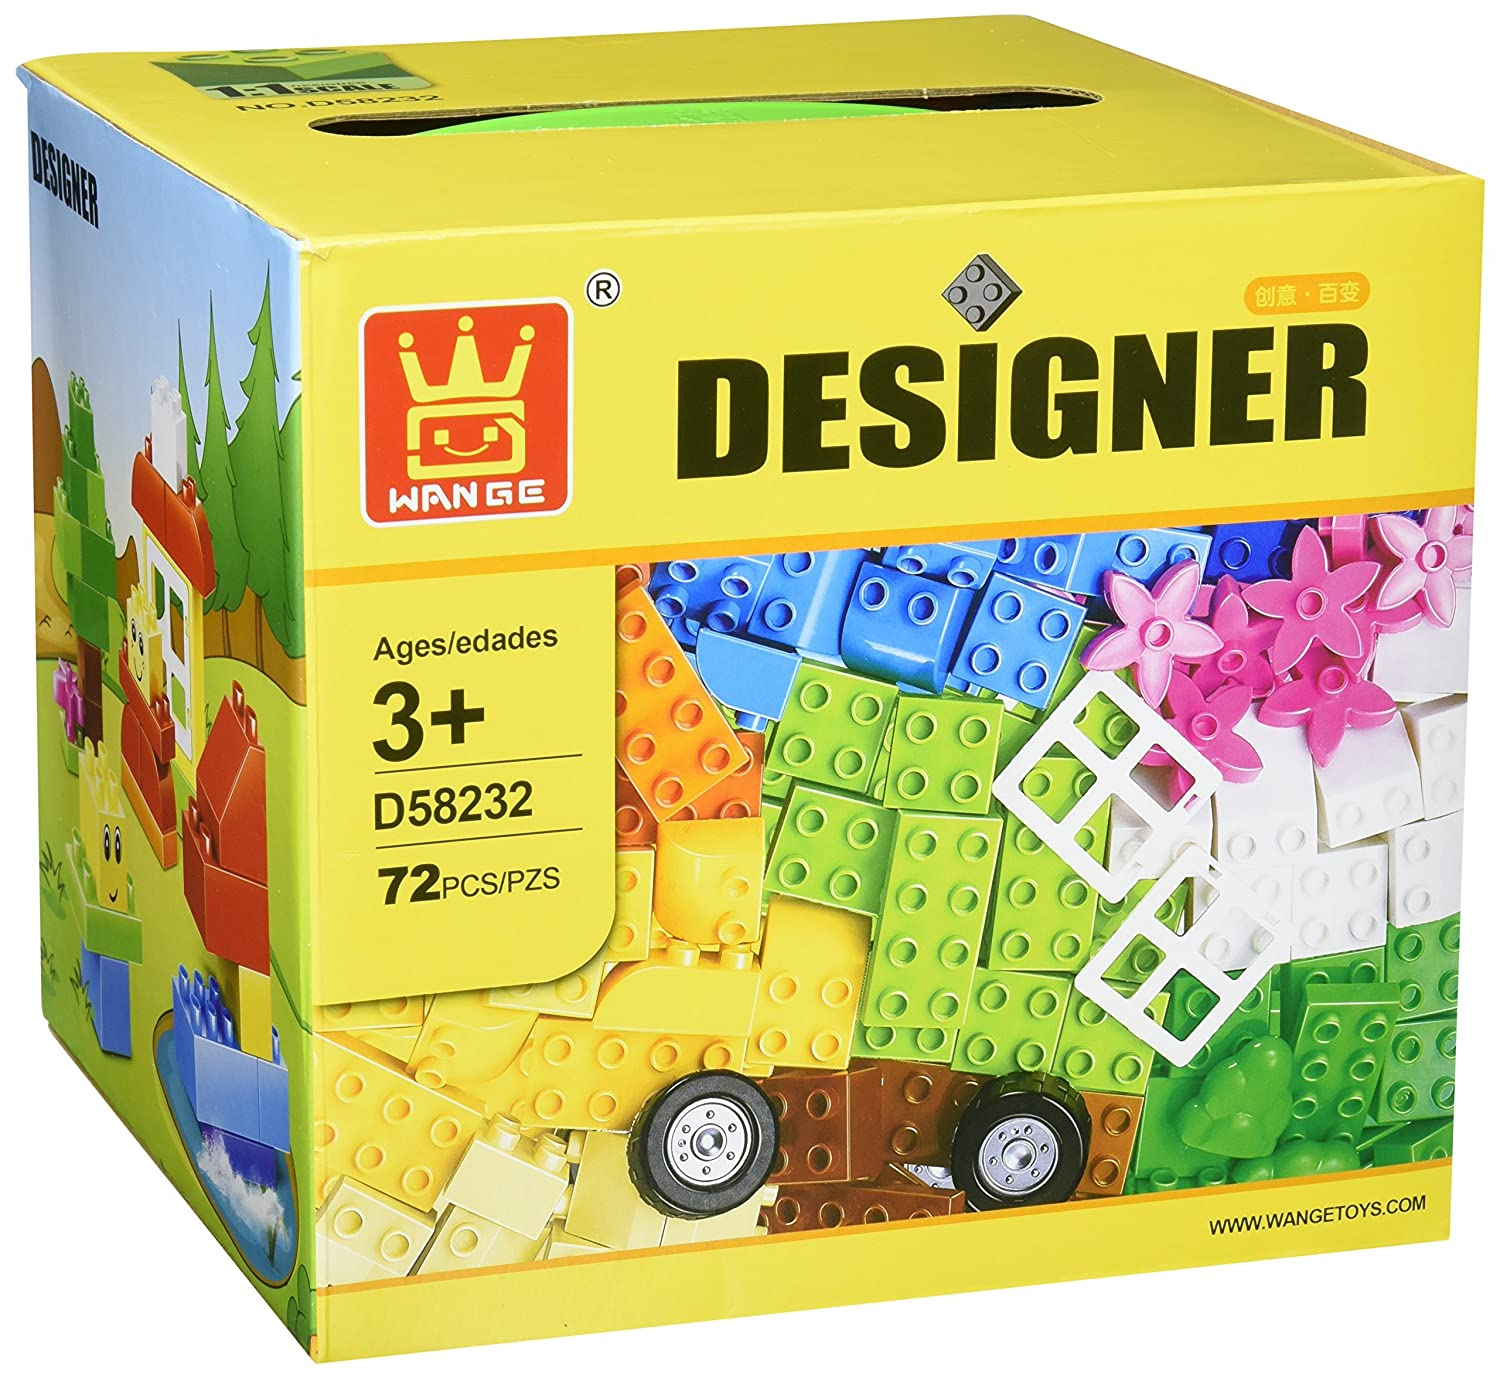 Amazon.com: Little Builder Designer building blocks for toddlers ...